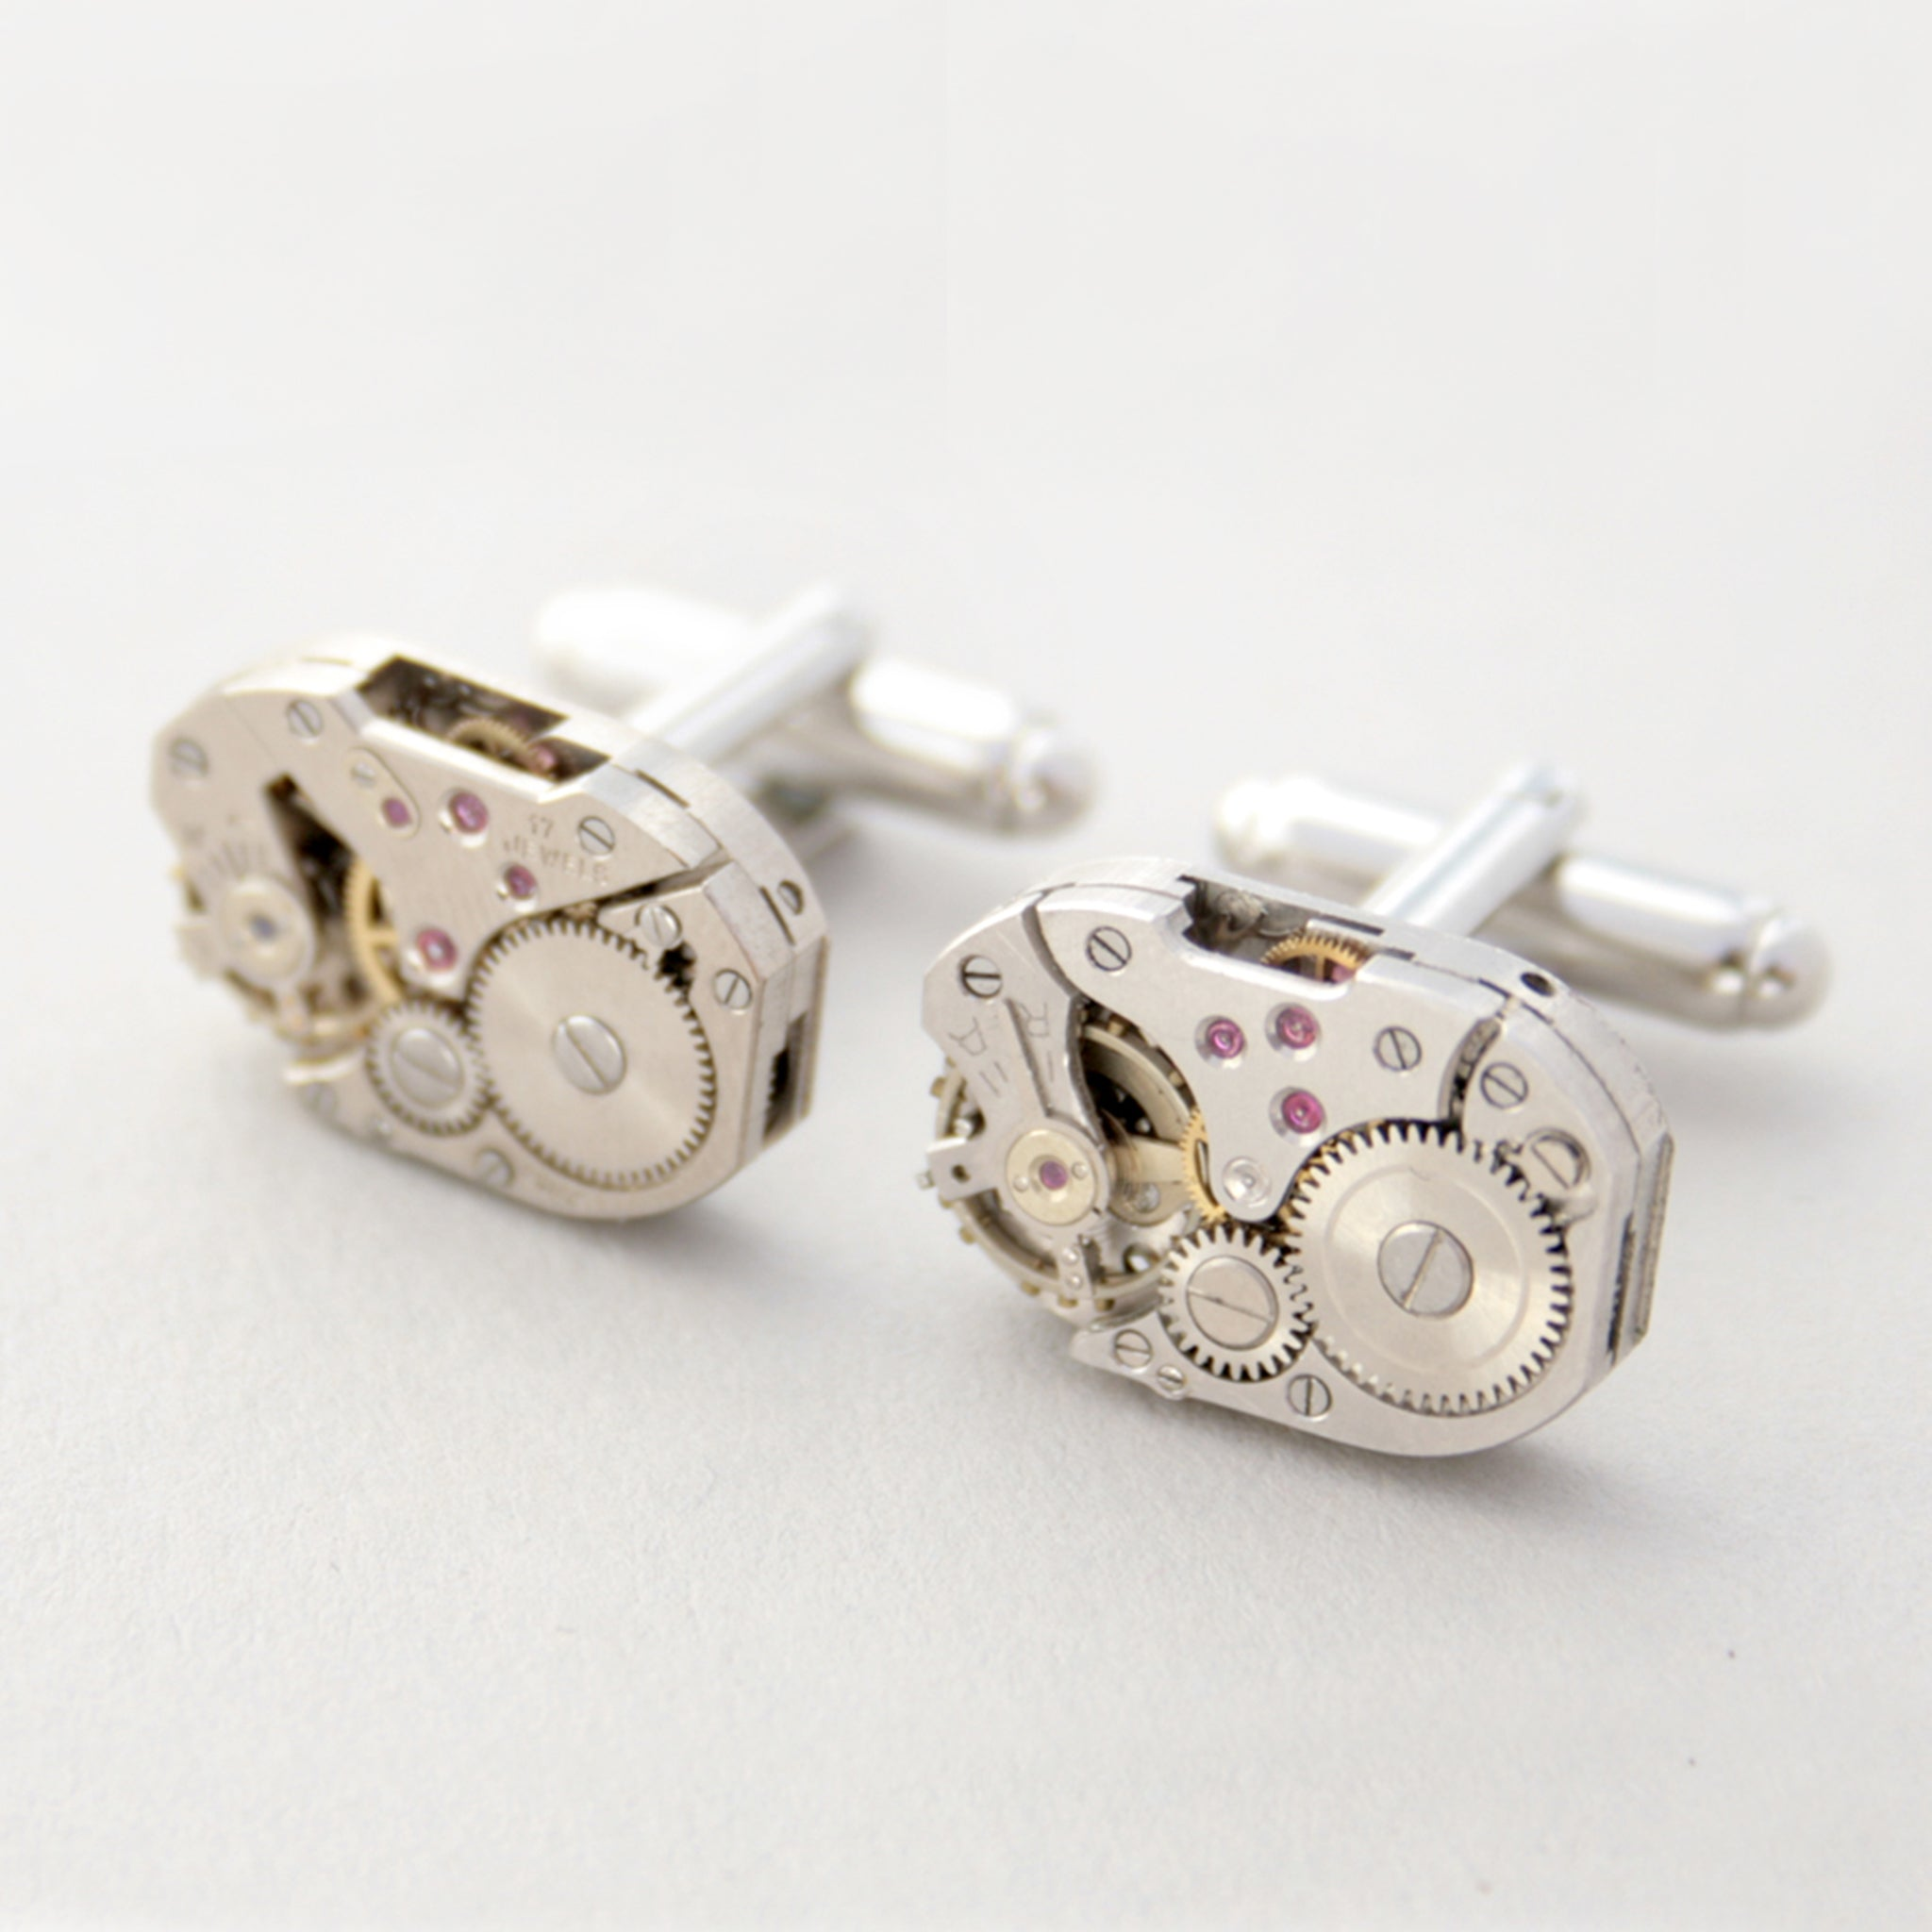 Wedding Cufflinks in Steampunk Style made of watch movements